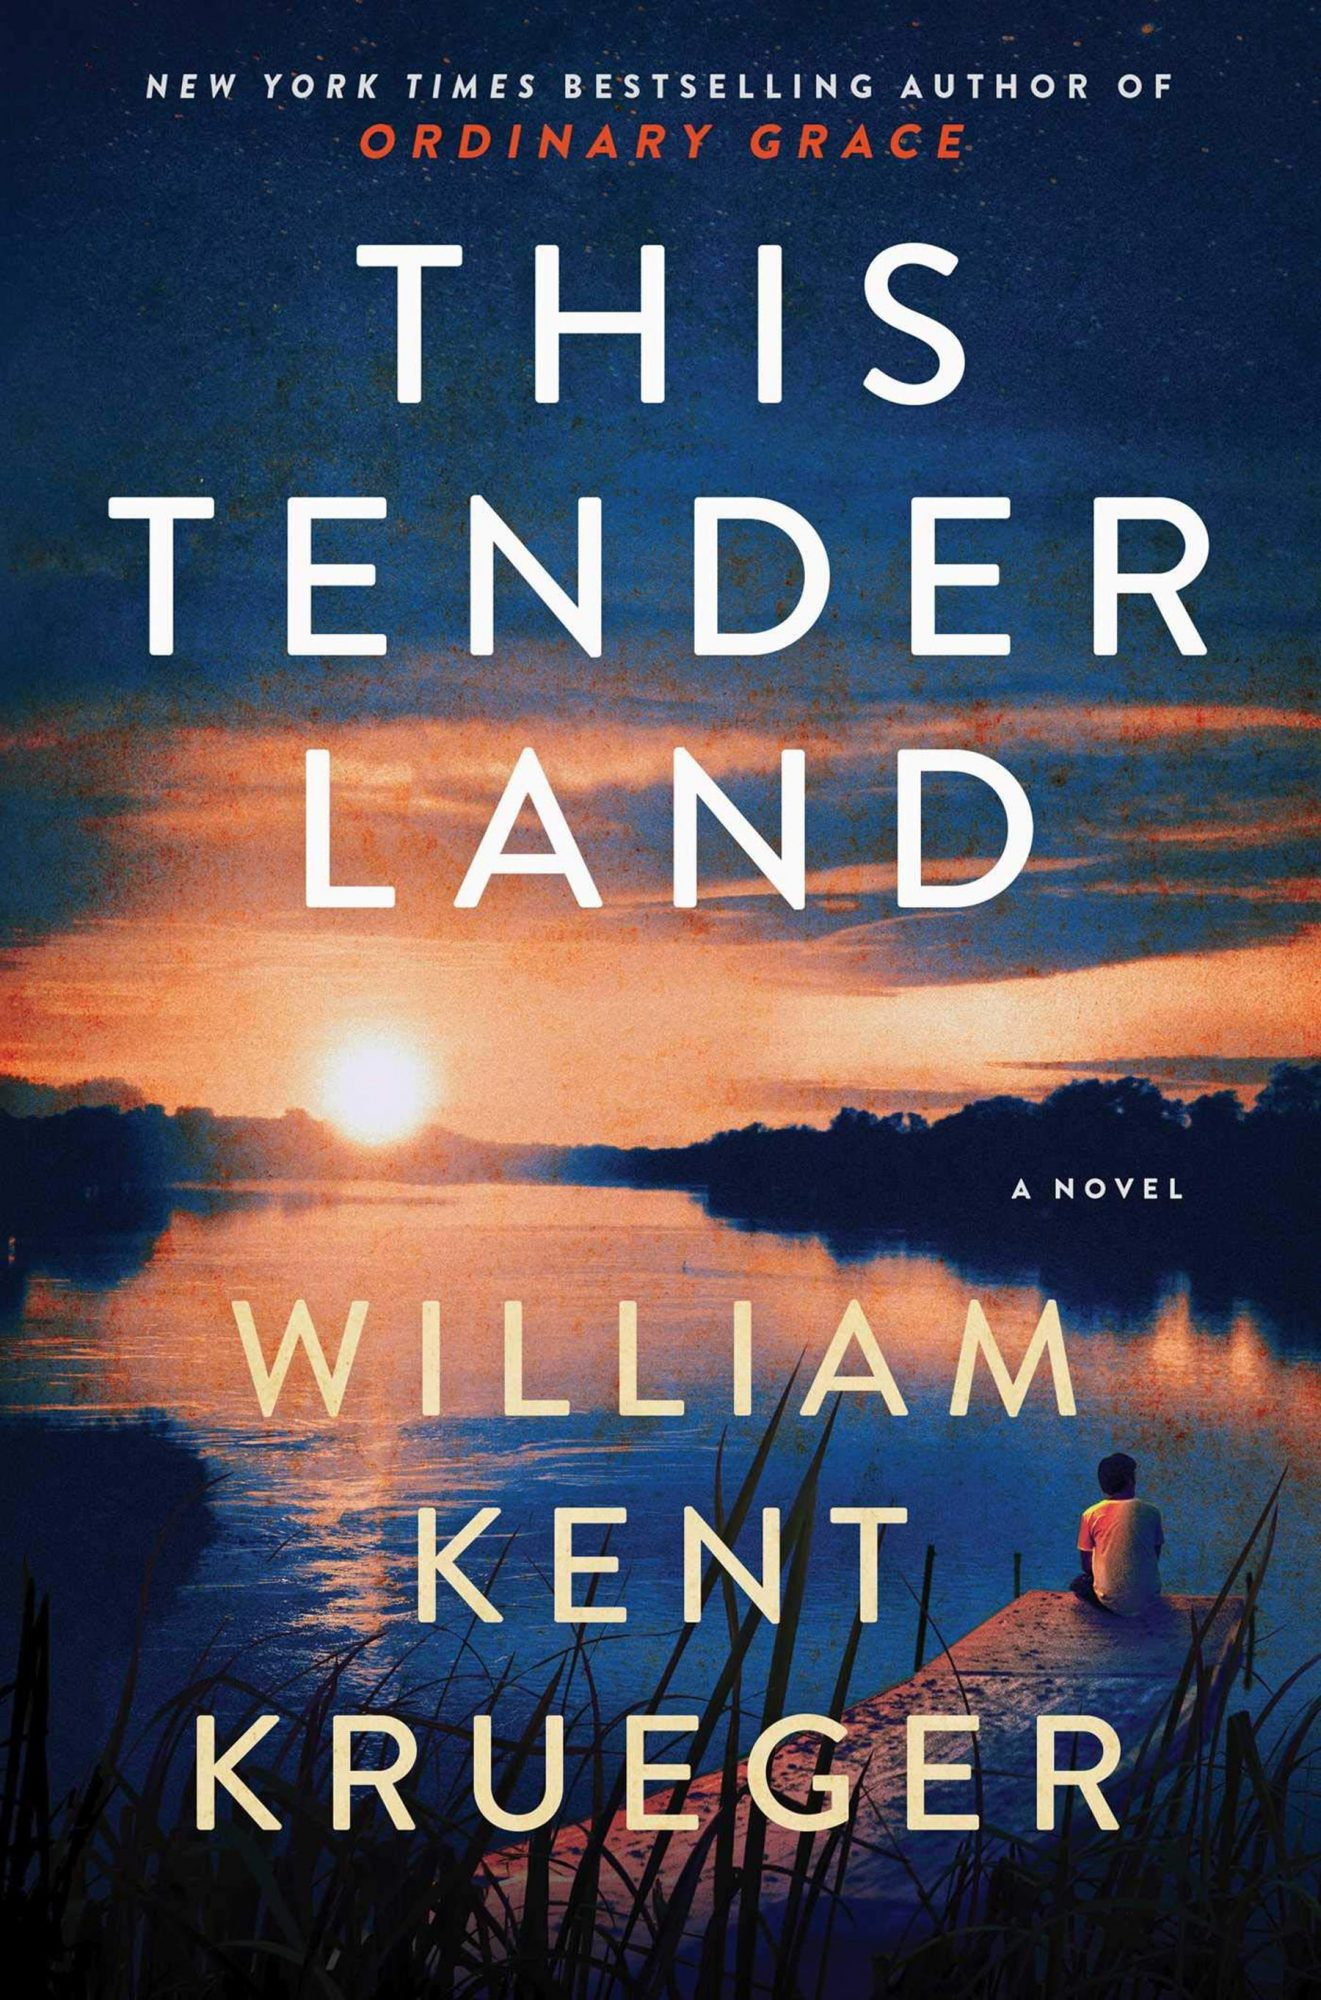 This Tender Land by William Kent KruegerPublisher: Atria Books